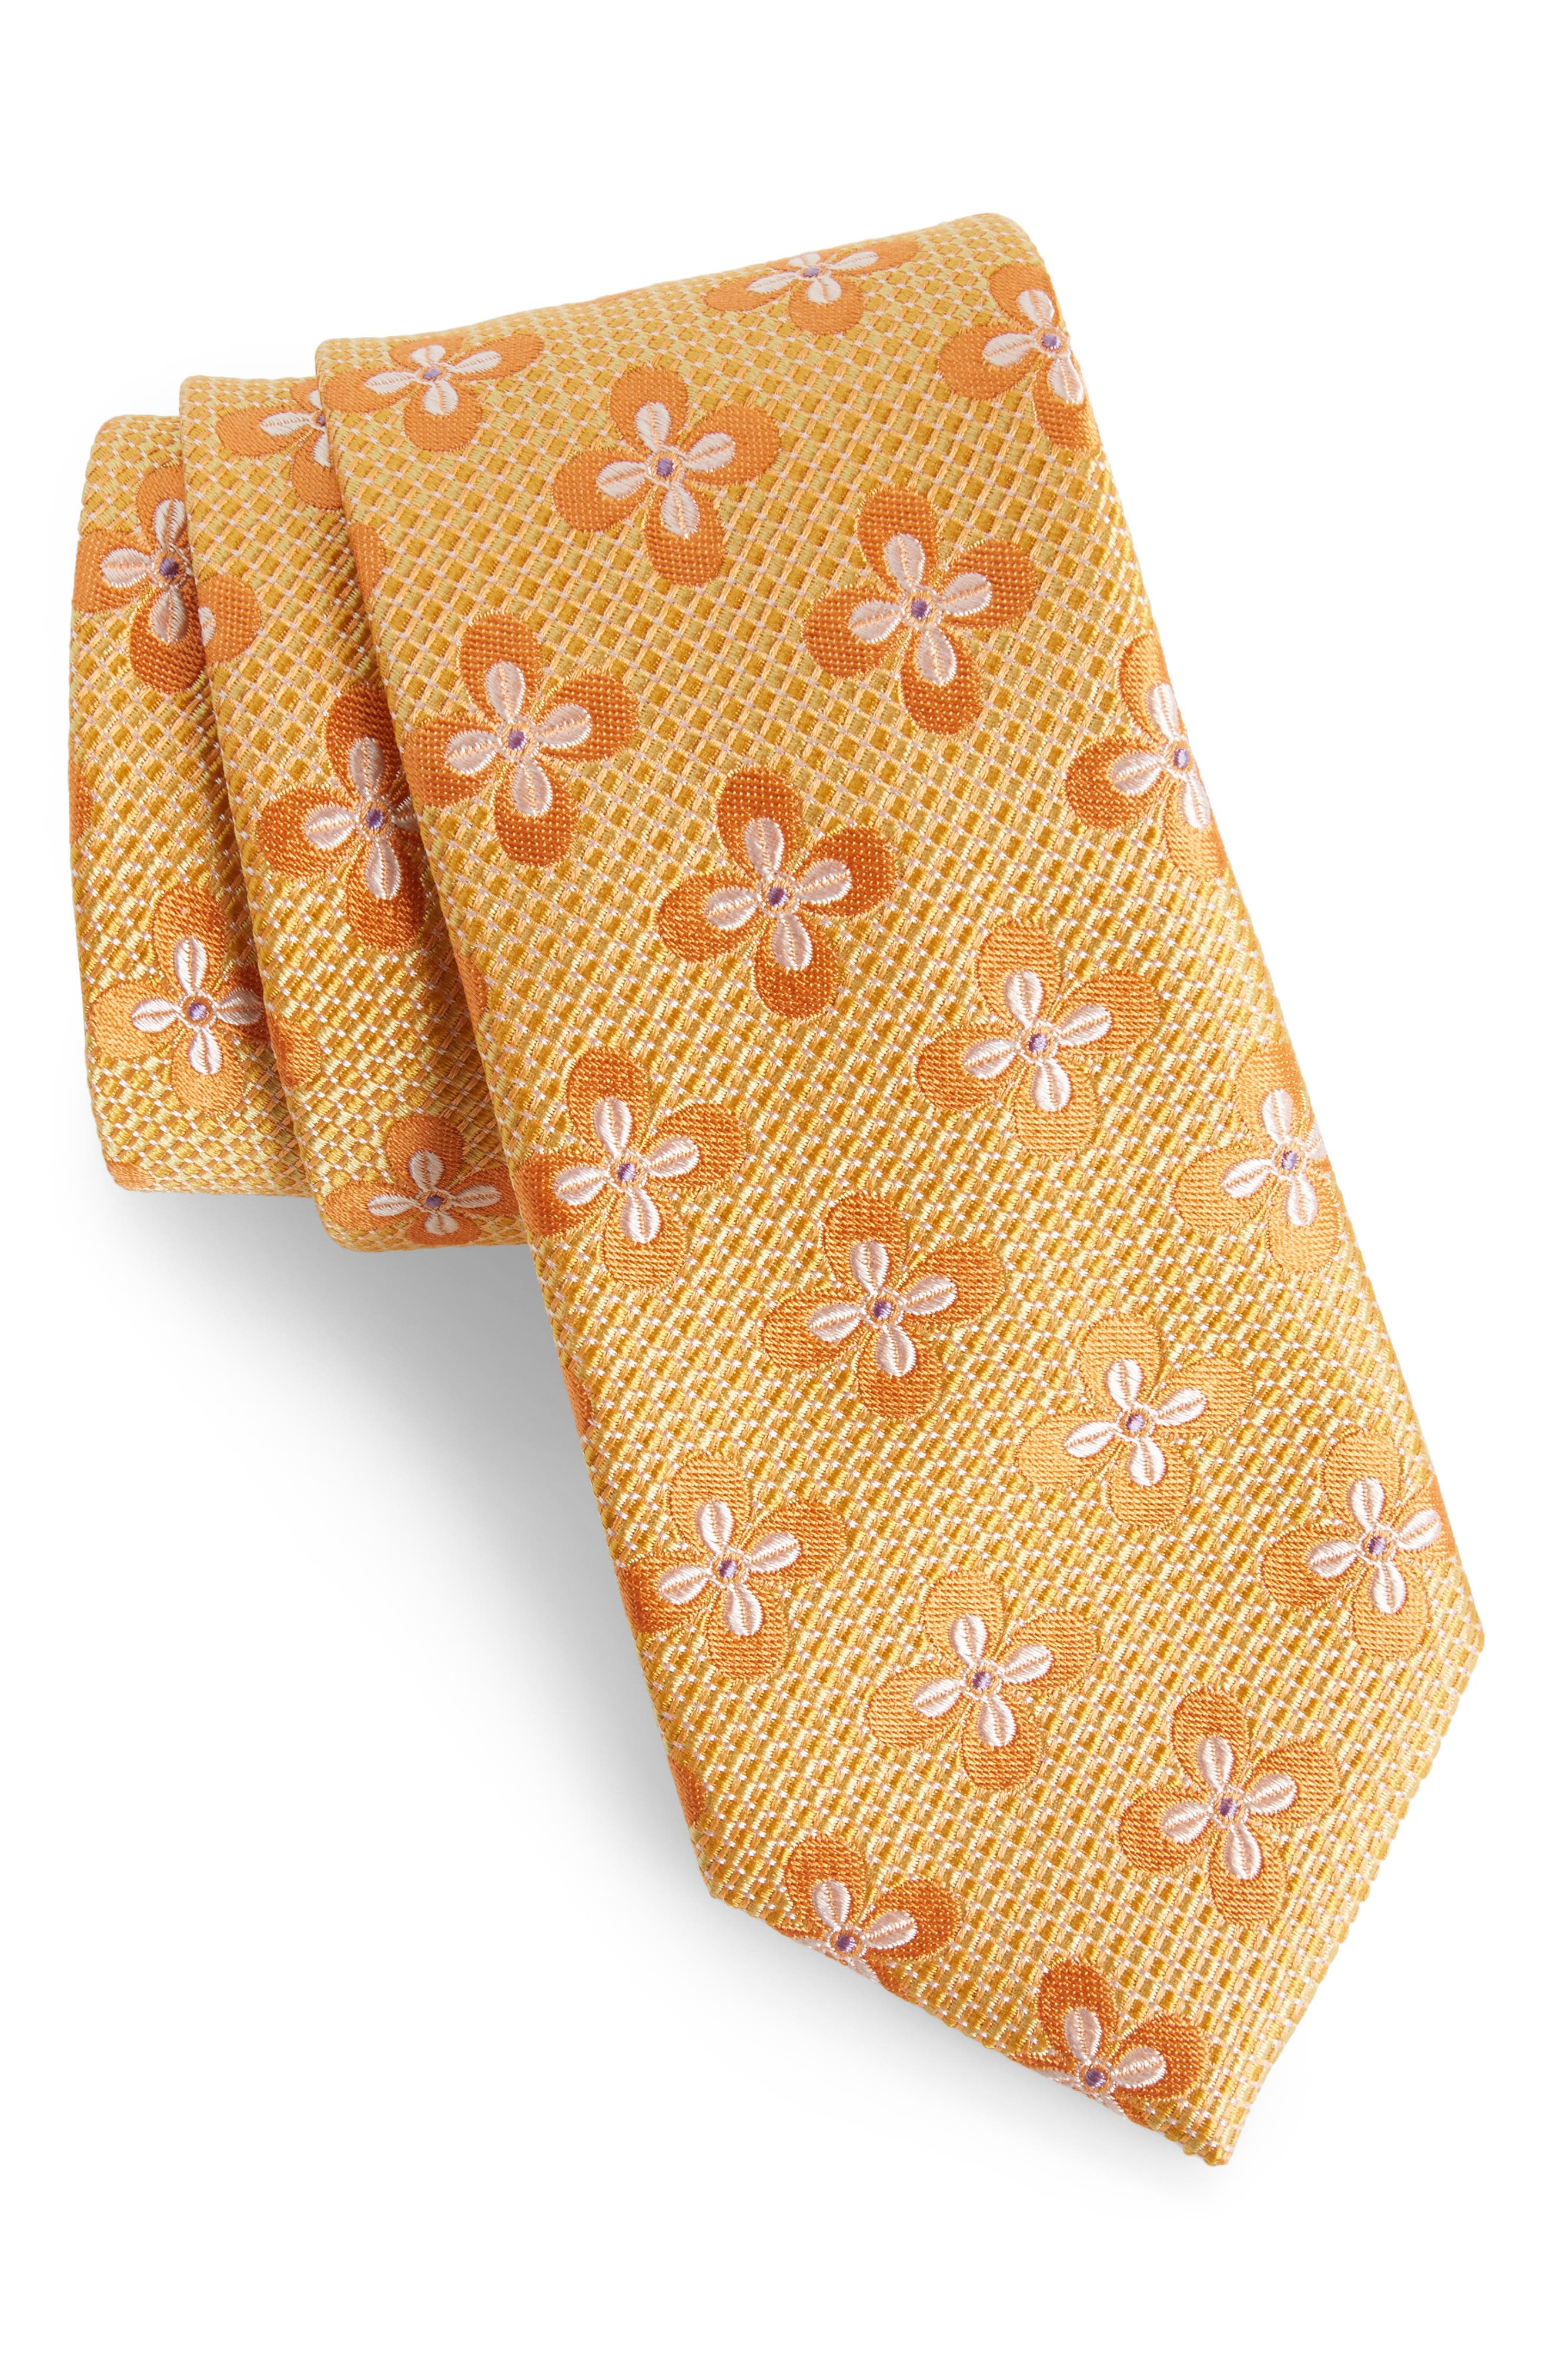 Floral Silk Tie,                         Main,                         color, Orange